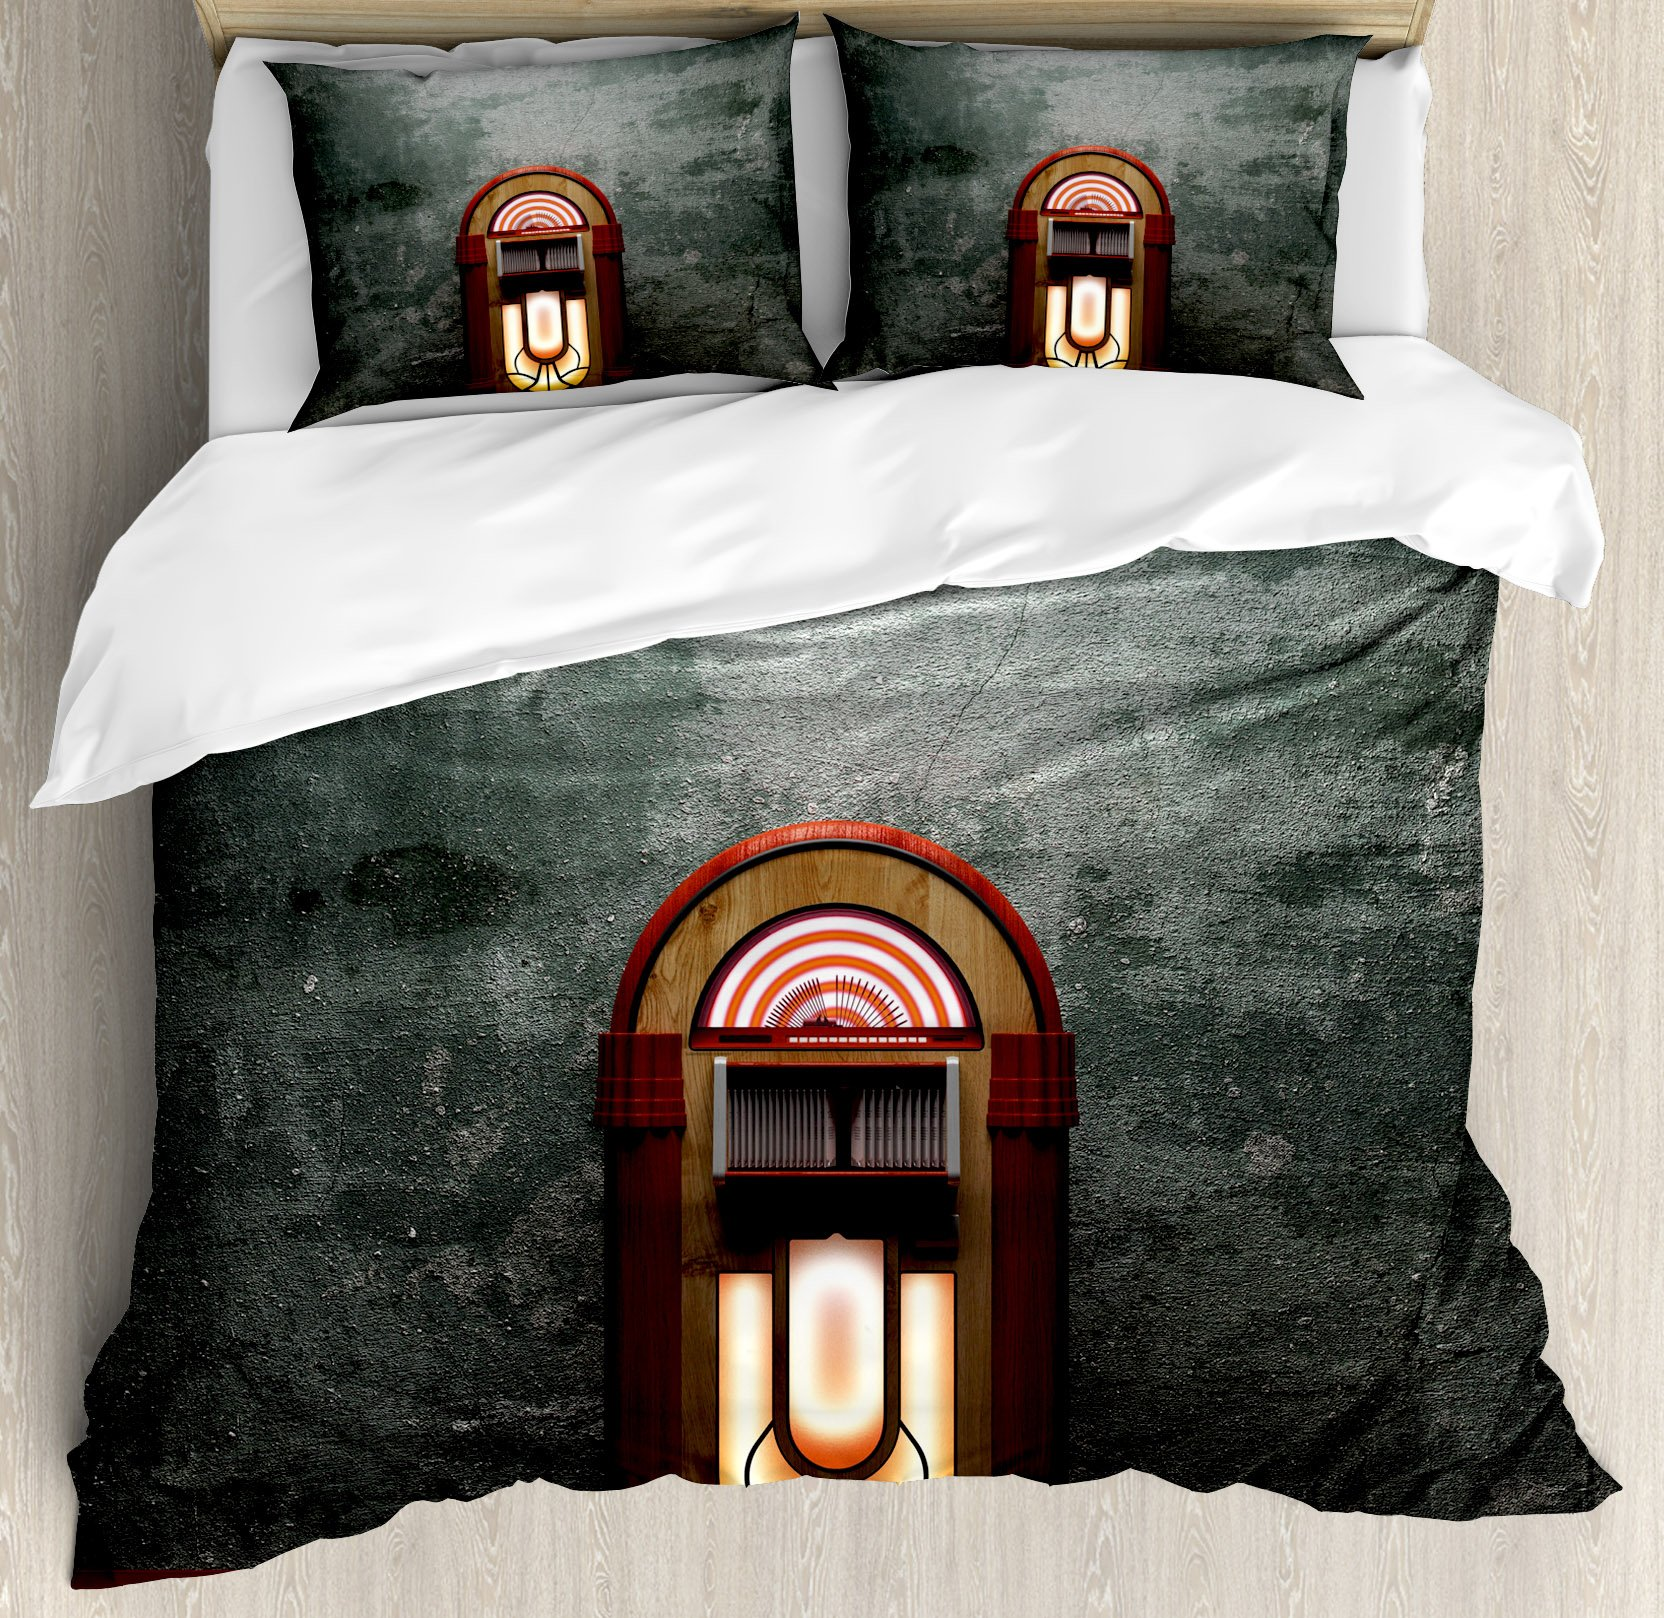 Jukebox Duvet Cover Set by Ambesonne, Scary Movie Theme Old Abandoned Home with Antique Old Music Box Image, 3 Piece Bedding Set with Pillow Shams, Queen / Full, Petrol Green and Brown